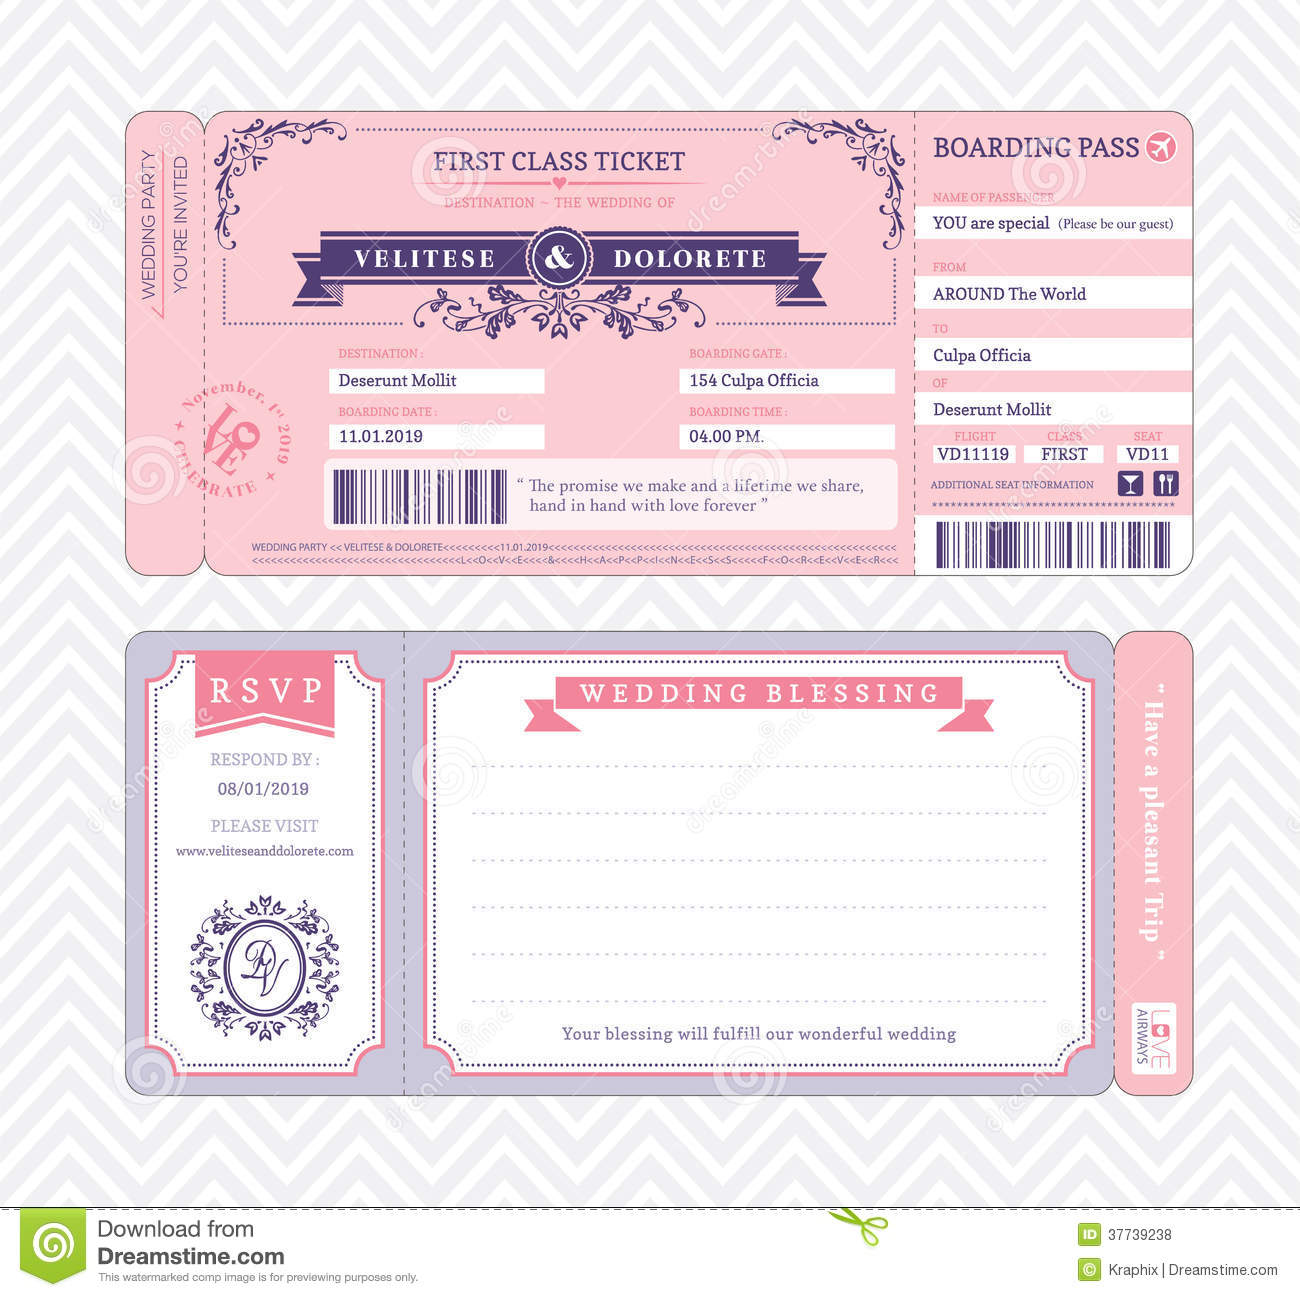 Boarding Pass Wedding Invitation Template Stock Vector - Wedding invitations templates download